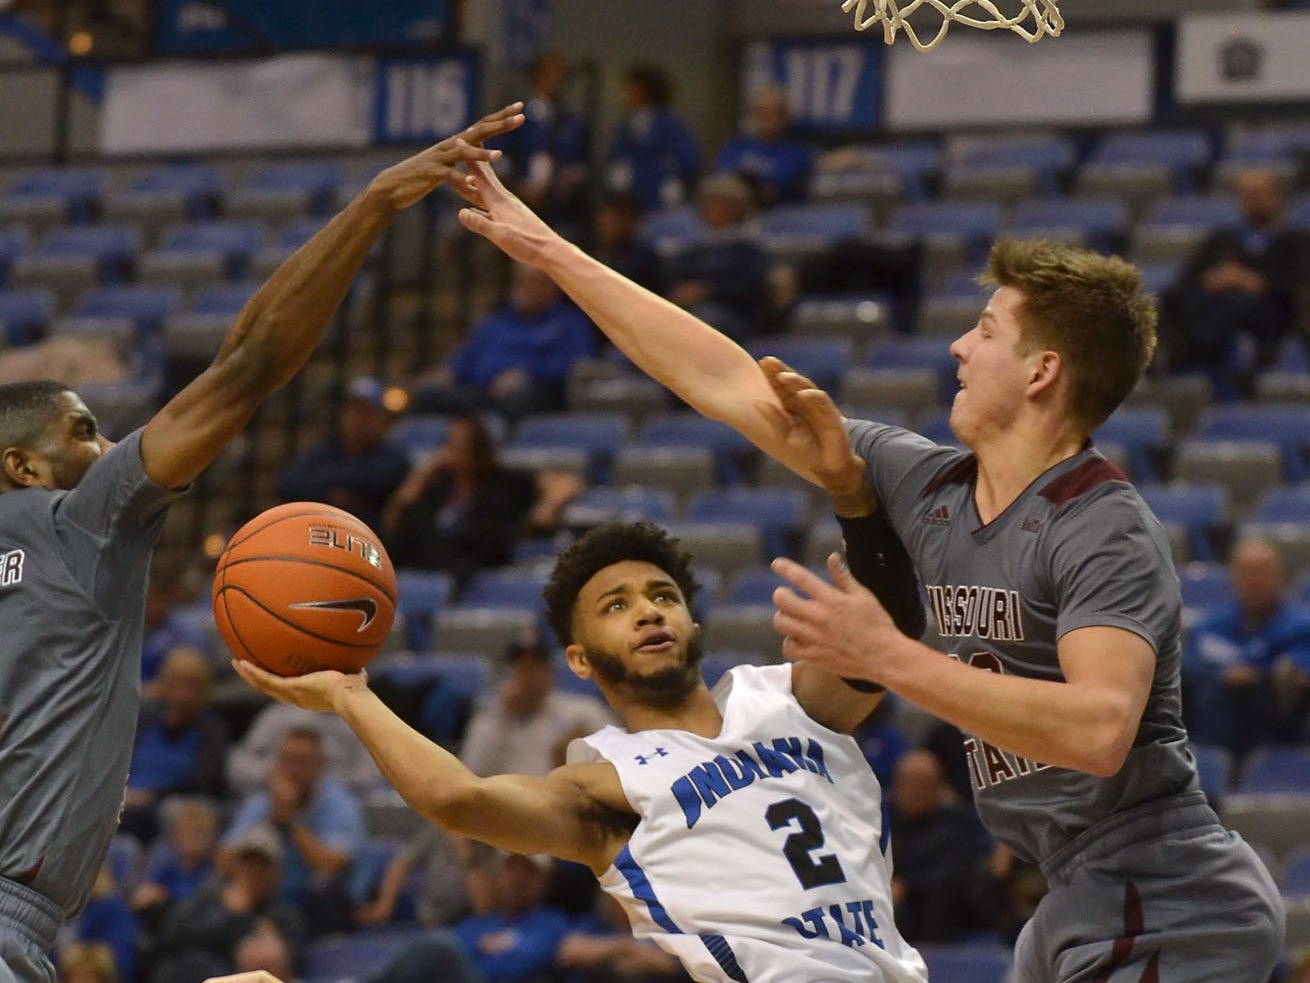 Indiana State's Jordan Barnes is blocked by Missouri State's Josh Webster and Ryan Kreklow during the Sycamores' 72-57 loss on Tuesday, Jan. 8, 2019 in Terre Haute, Ind. (AP Photo/Tribune-Star, Joseph C. Garza)